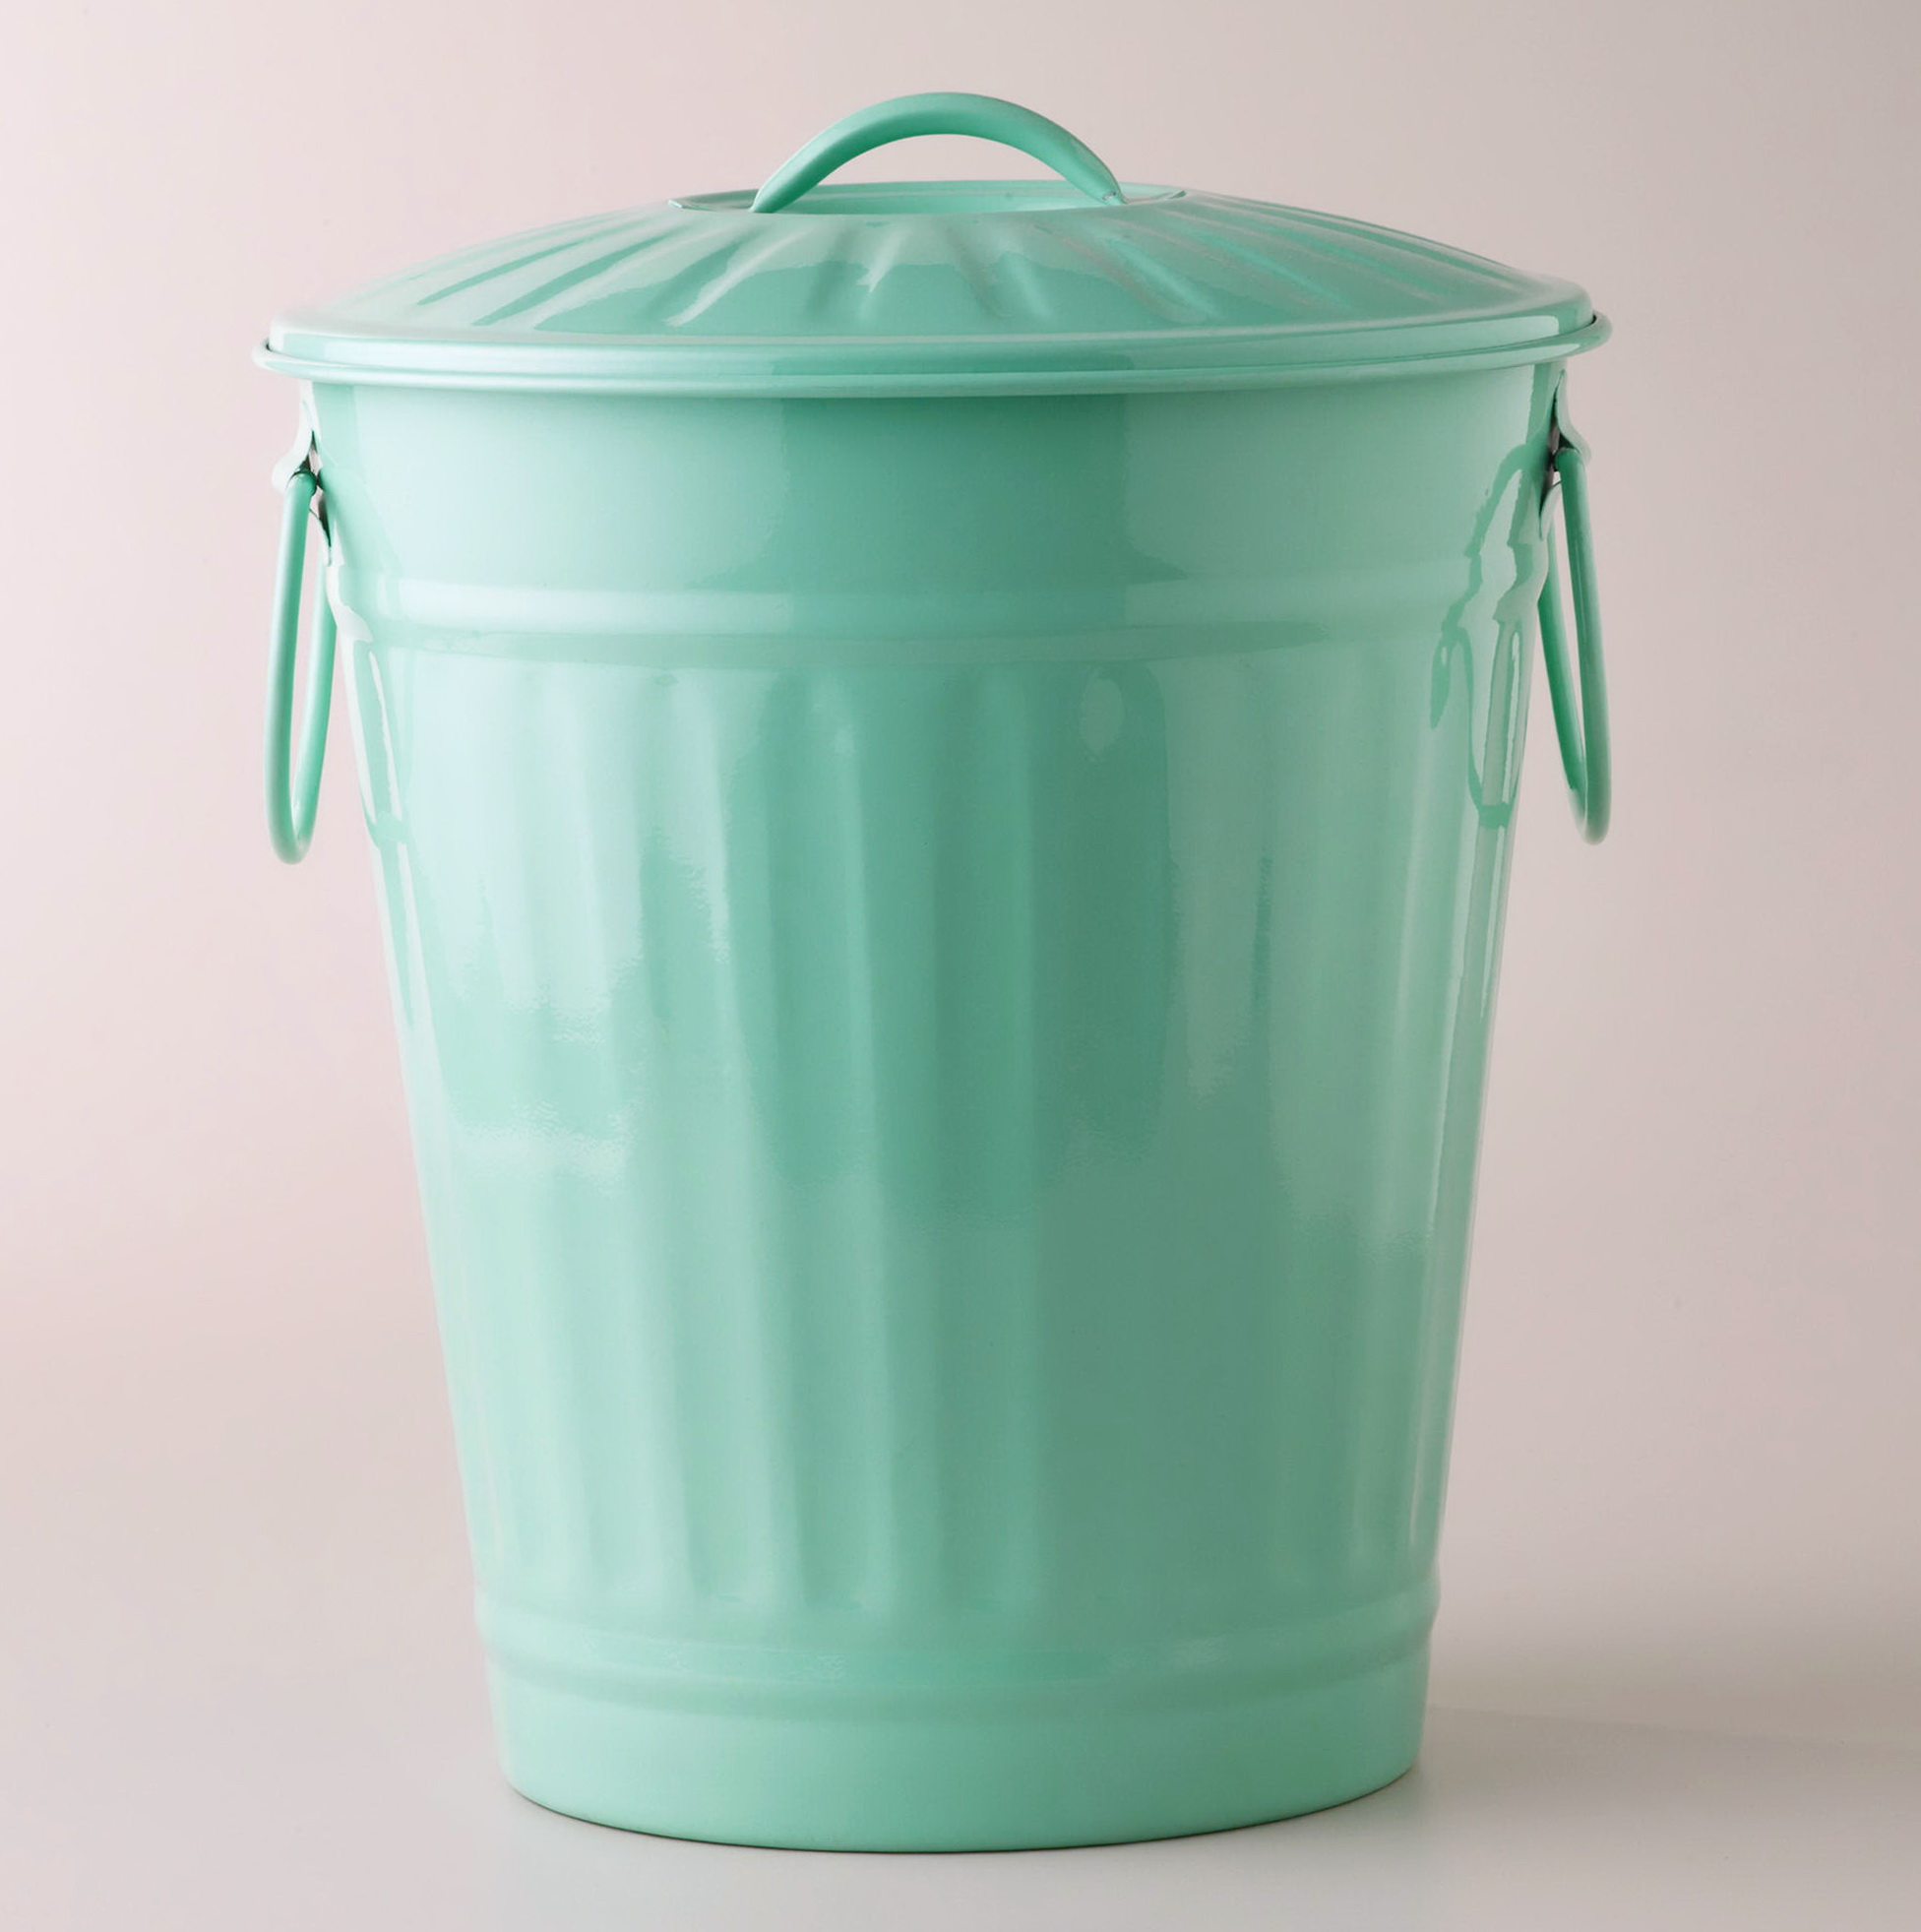 Retro Kitchen Trash Cans